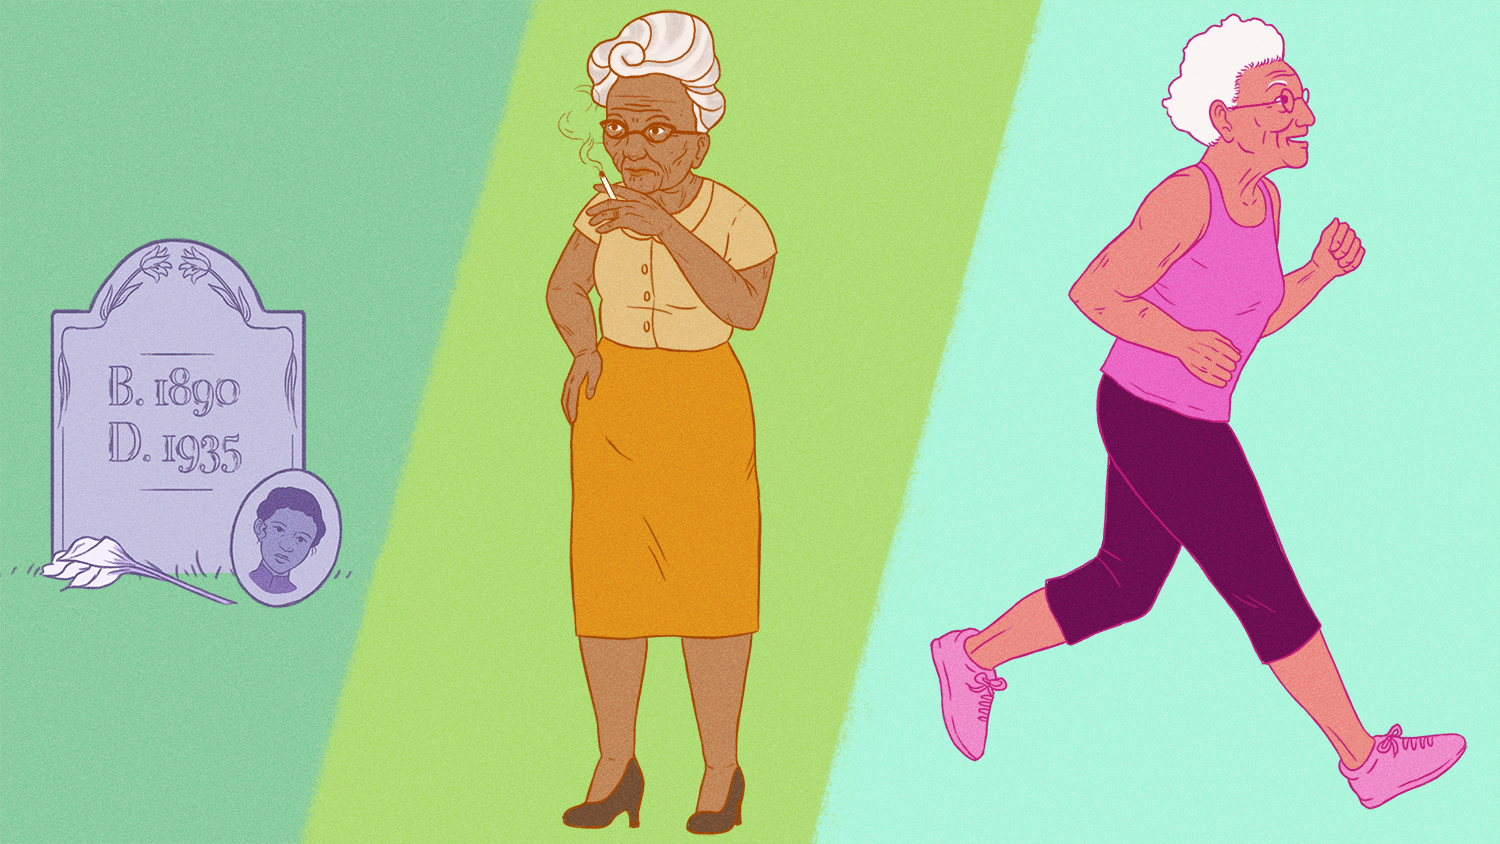 Illustration showing age difference of 1935 woman vs 1950s woman vs present day woman